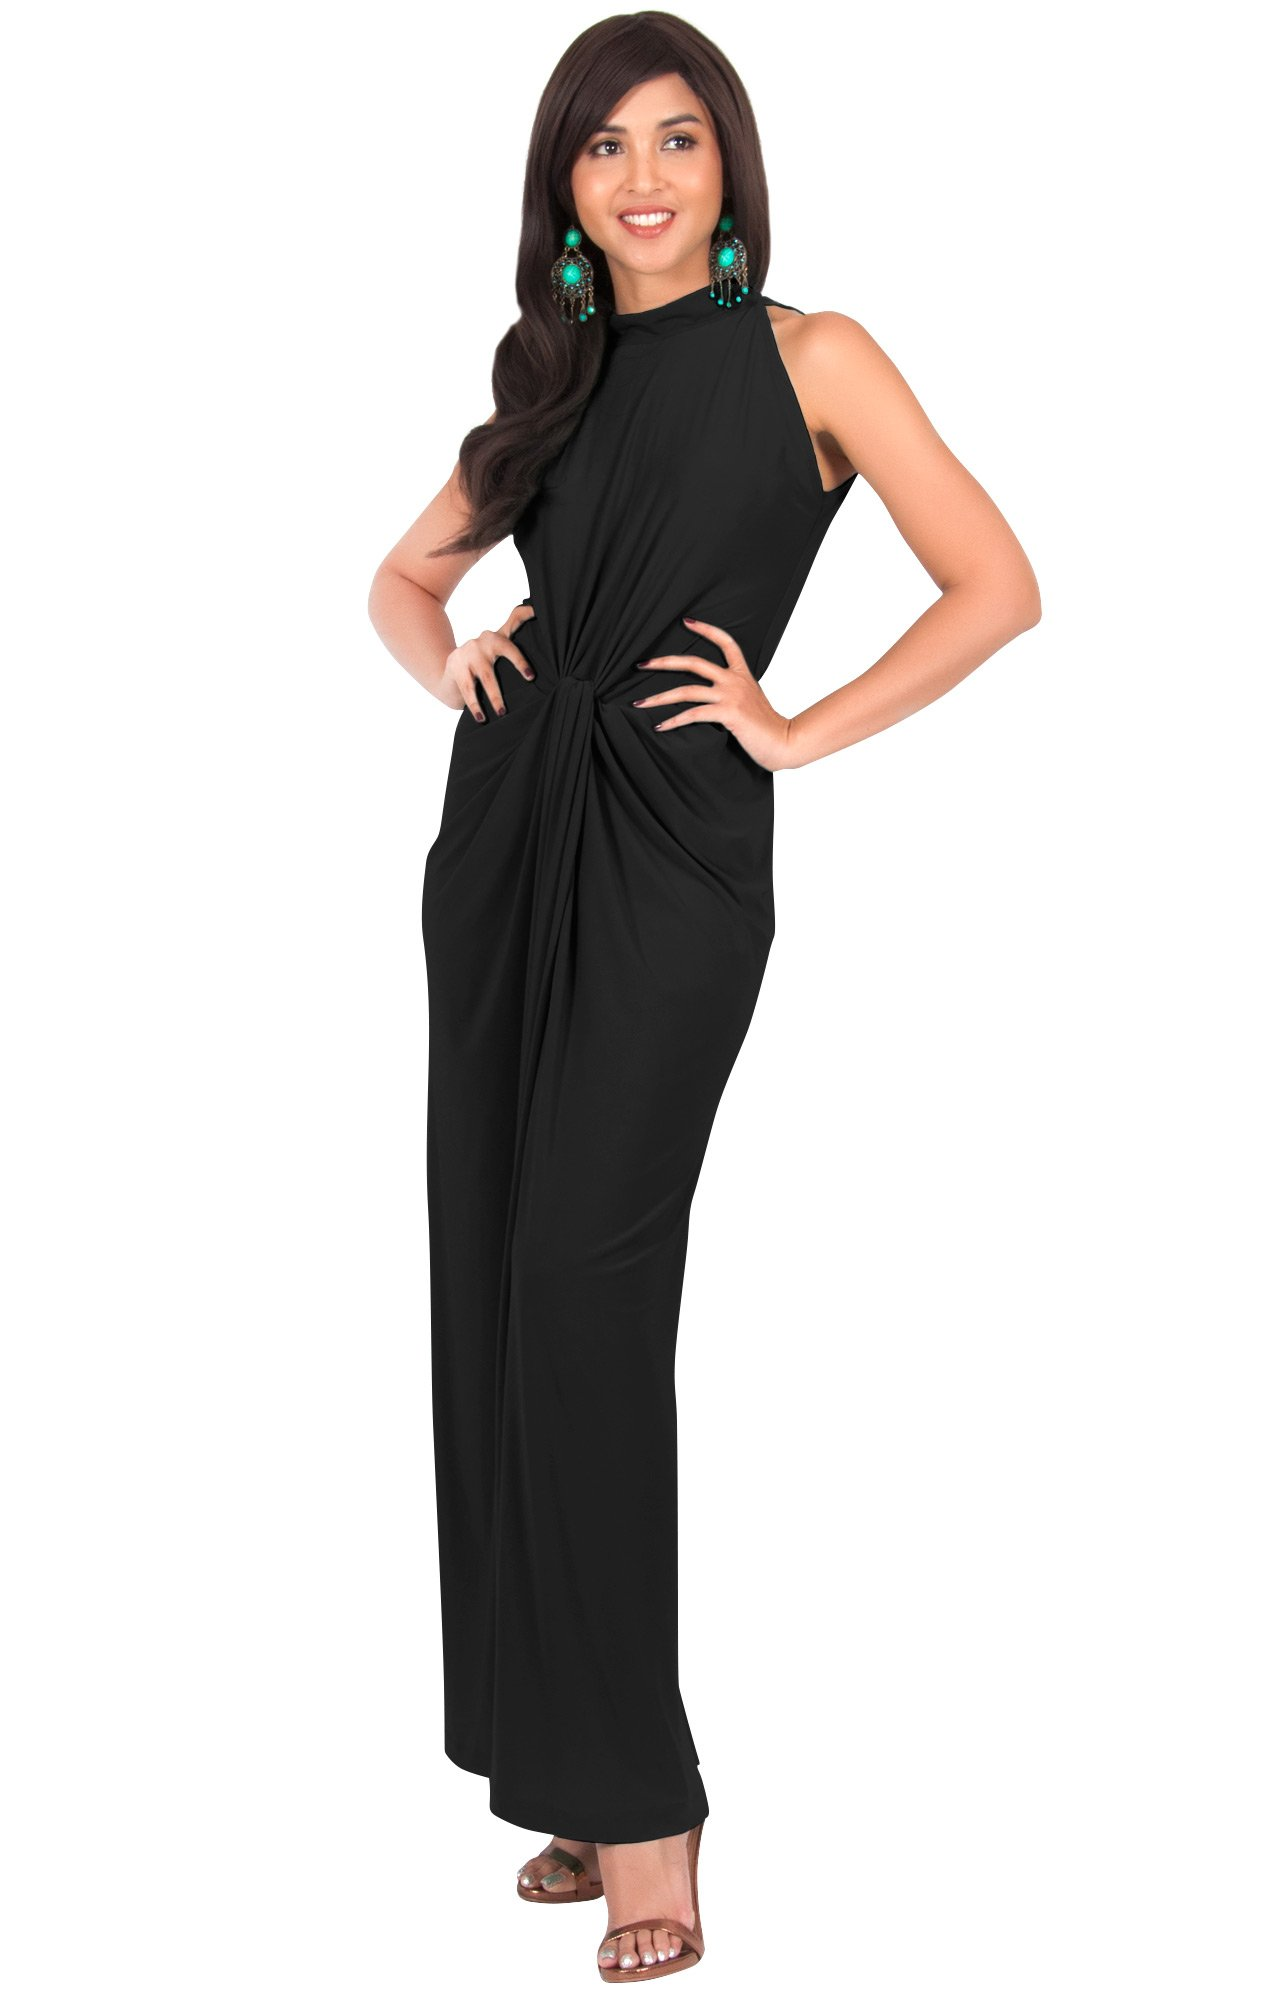 KOH KOH Womens Long Sleeveless Sexy Vintage Cocktail Slimming Party Evening Summer Sun Prom Bridesmaid Wedding Guest Sundress Gown Gowns Maxi Dress Dresses, Black L 12-14